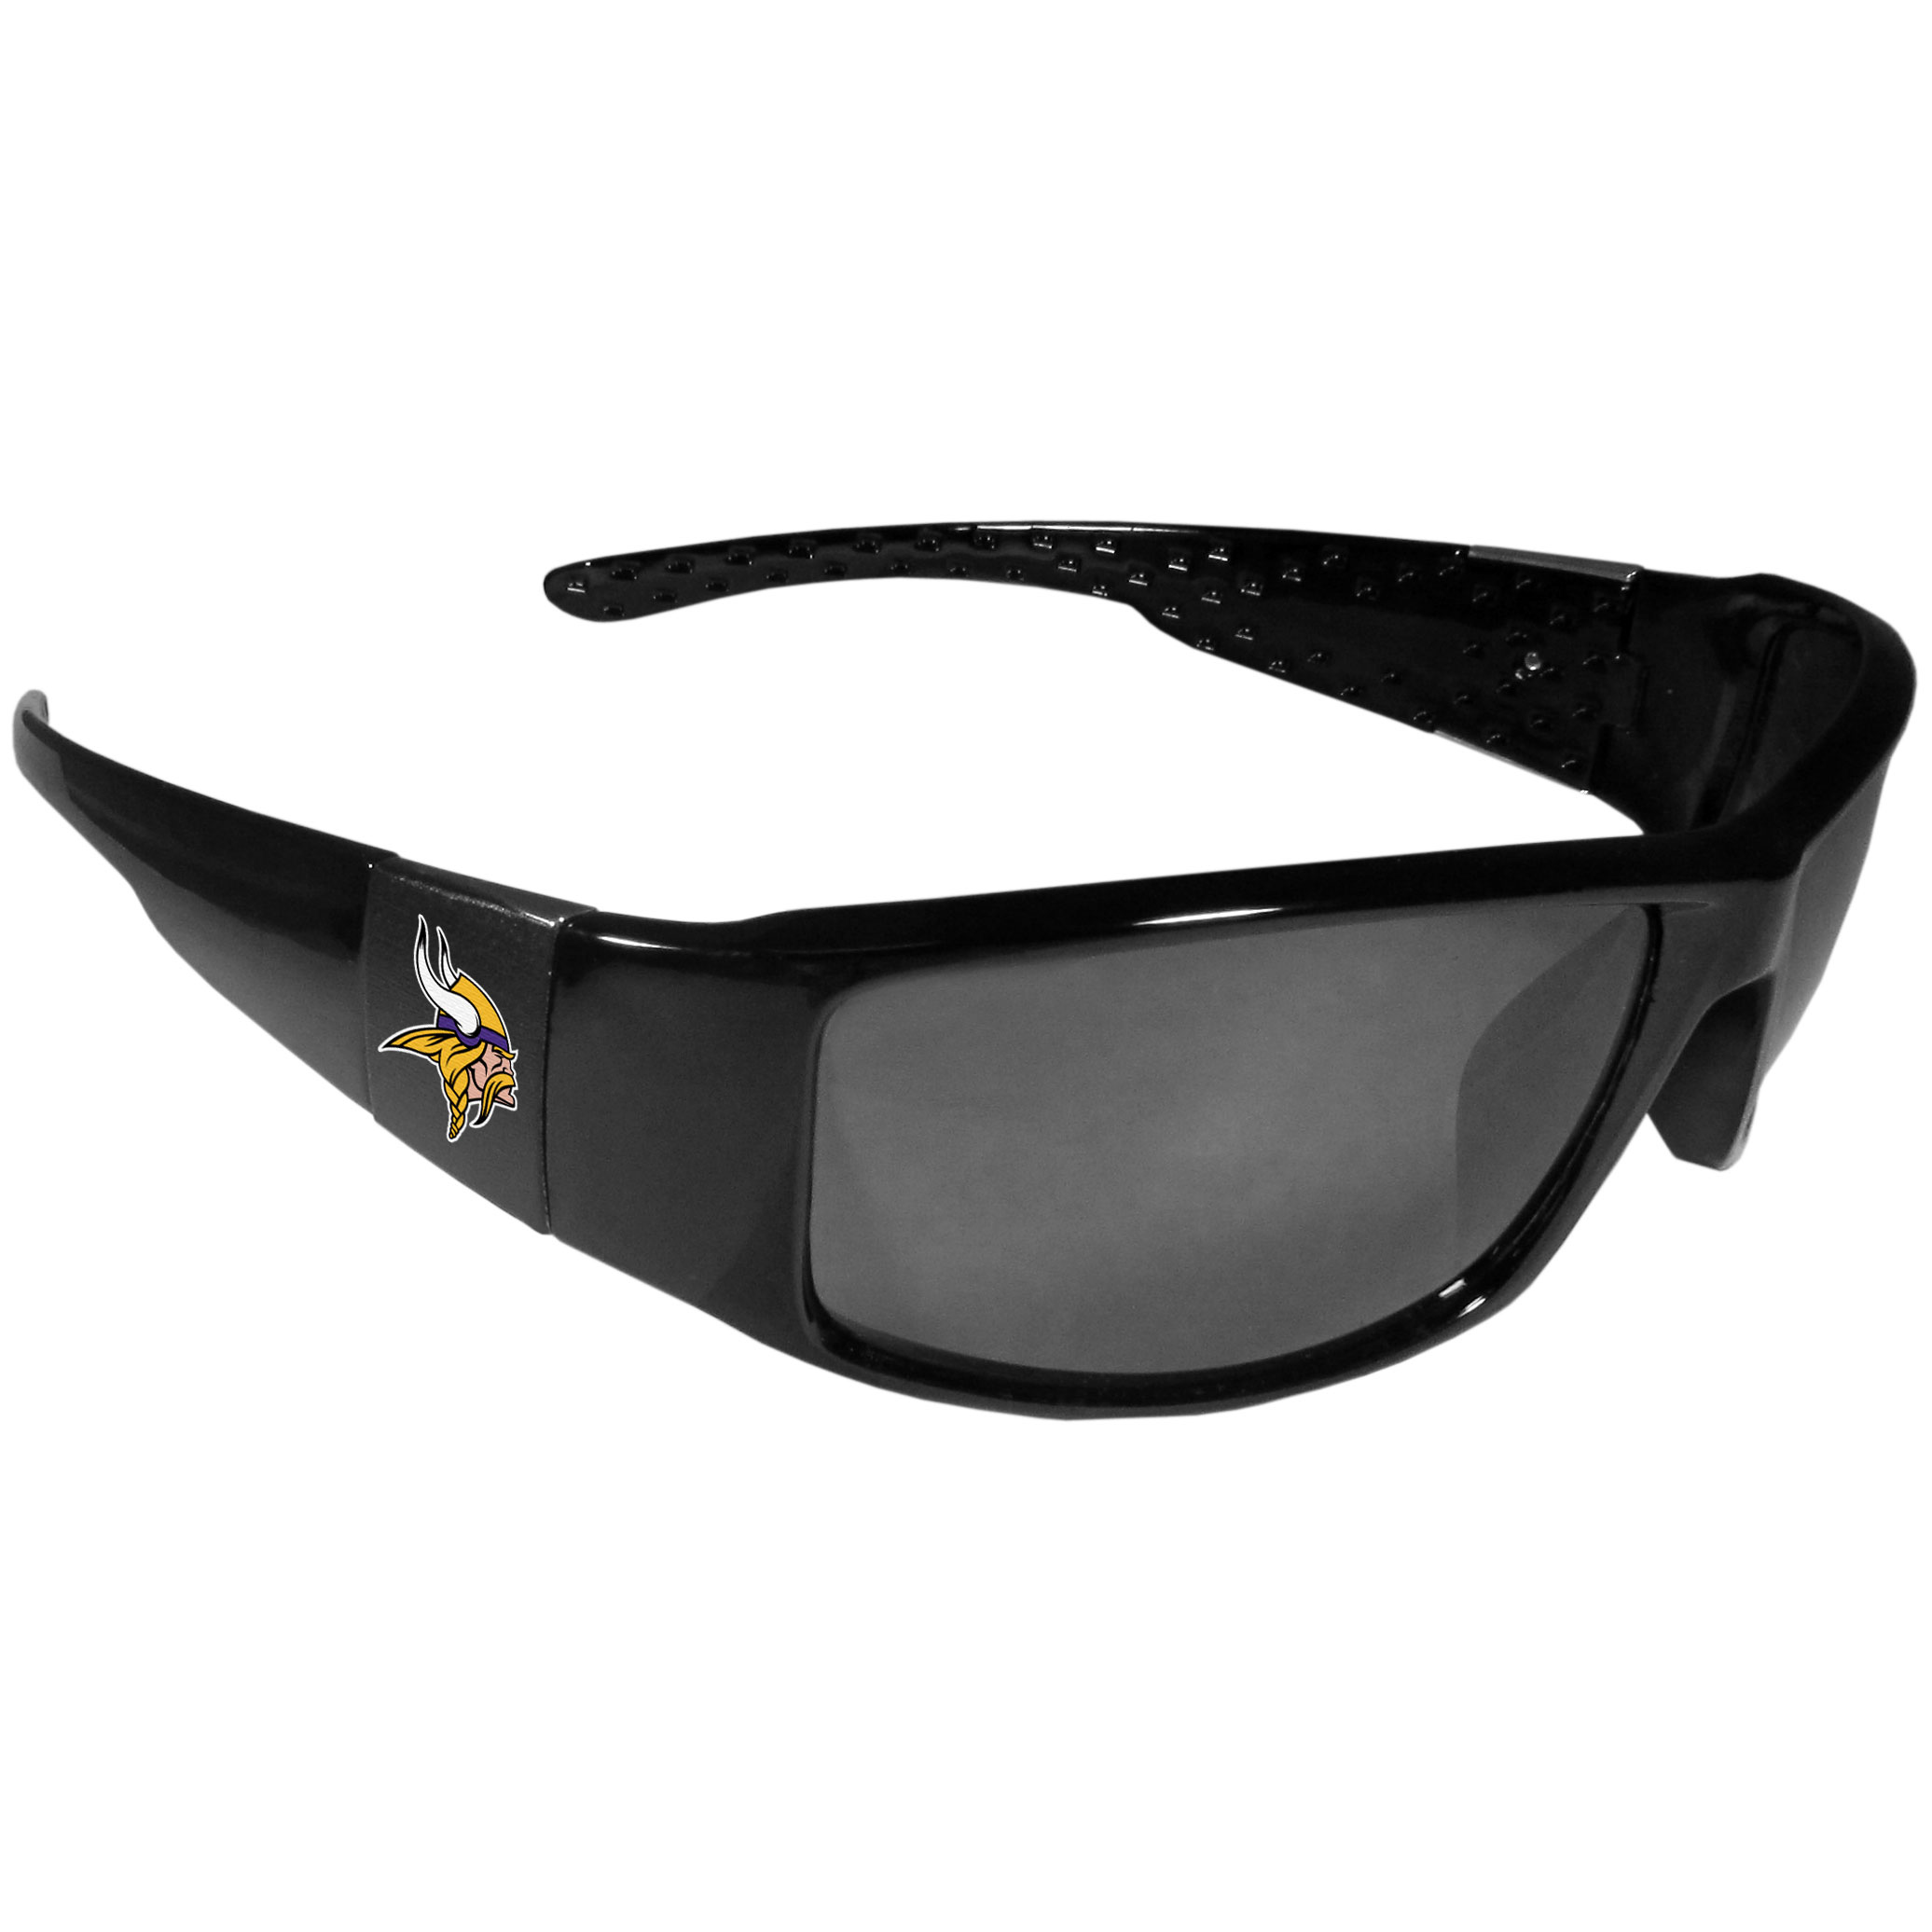 Minnesota Vikings Black Wrap Sunglasses - These designer inspired frames have a sleek look in all black with  Minnesota Vikings shields on each arm with a printed logo. The shades are perfect for any outdoor activity like; golfing, driving, hiking, fishing or cheering on the team at a tailgating event or at a home game day BBQ with a lens rating of 100% UVA/UVB for maximum UV protection. The high-quality frames are as durable as they are fashionable and with their classic look they are the perfect fan accessory that can be worn everyday for every occasion.